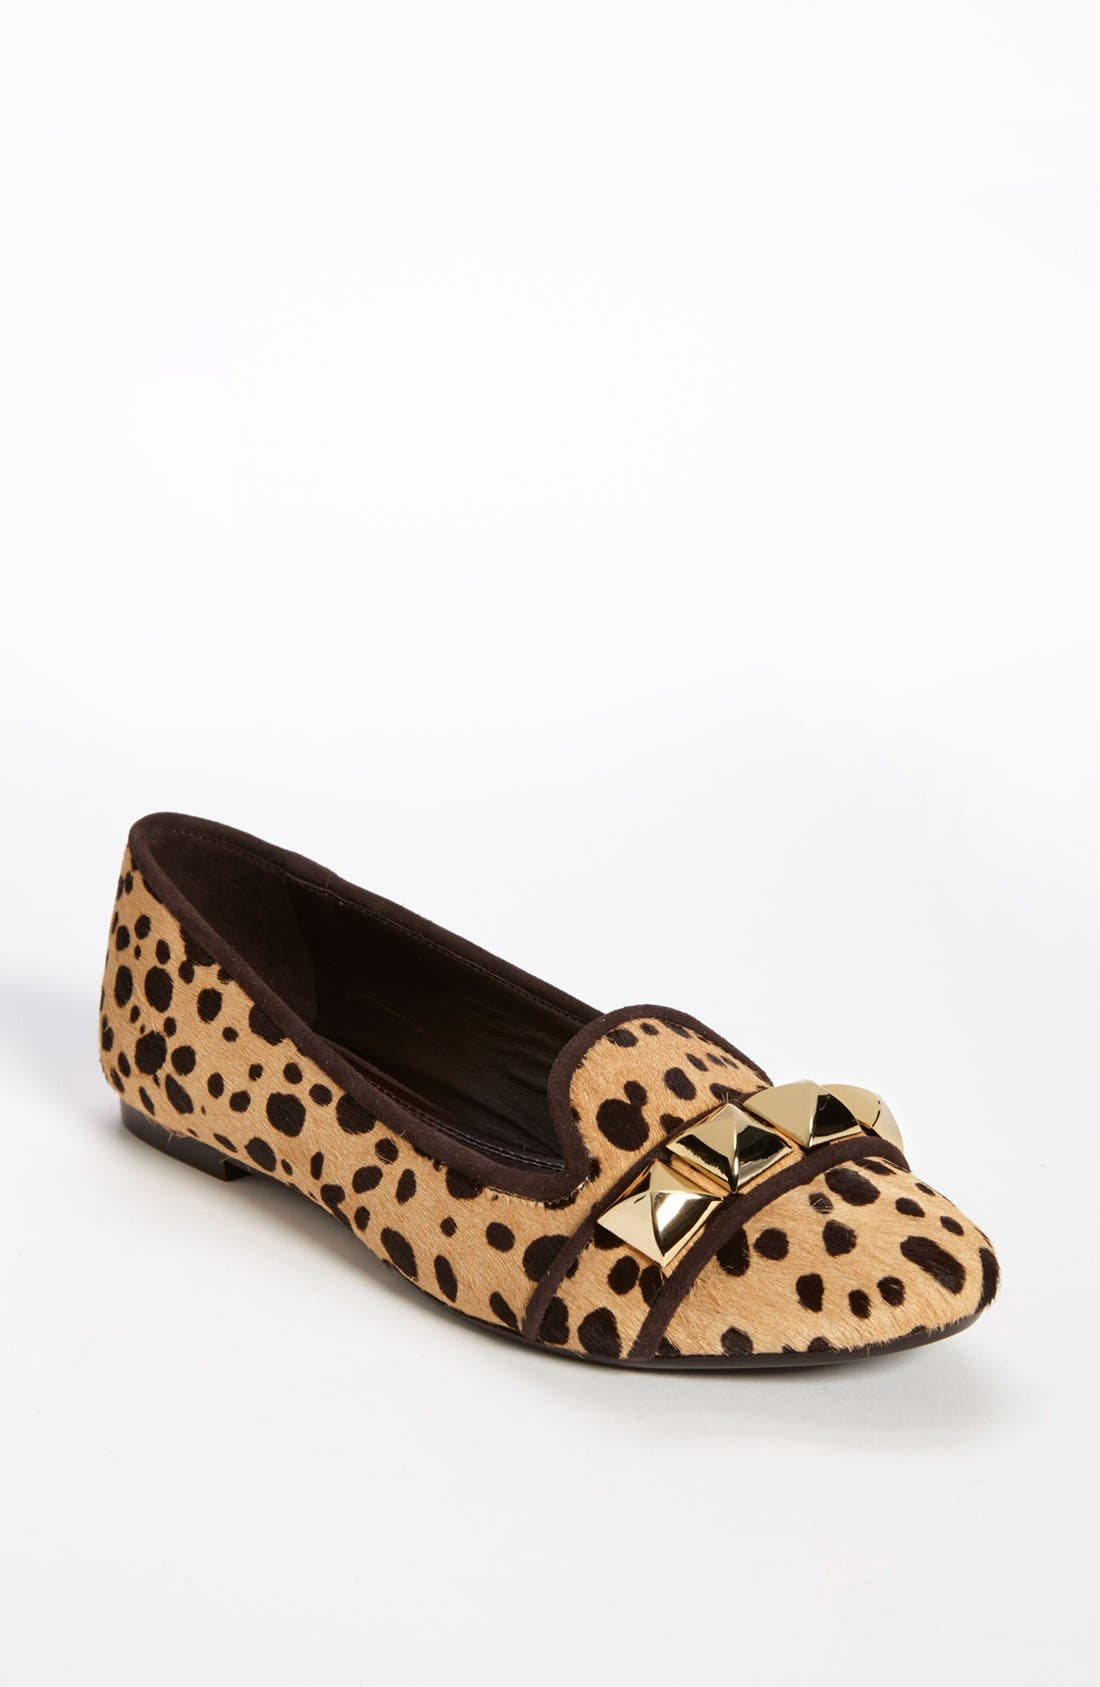 'Asher' Loafer Flat,                         Main,                         color, 250